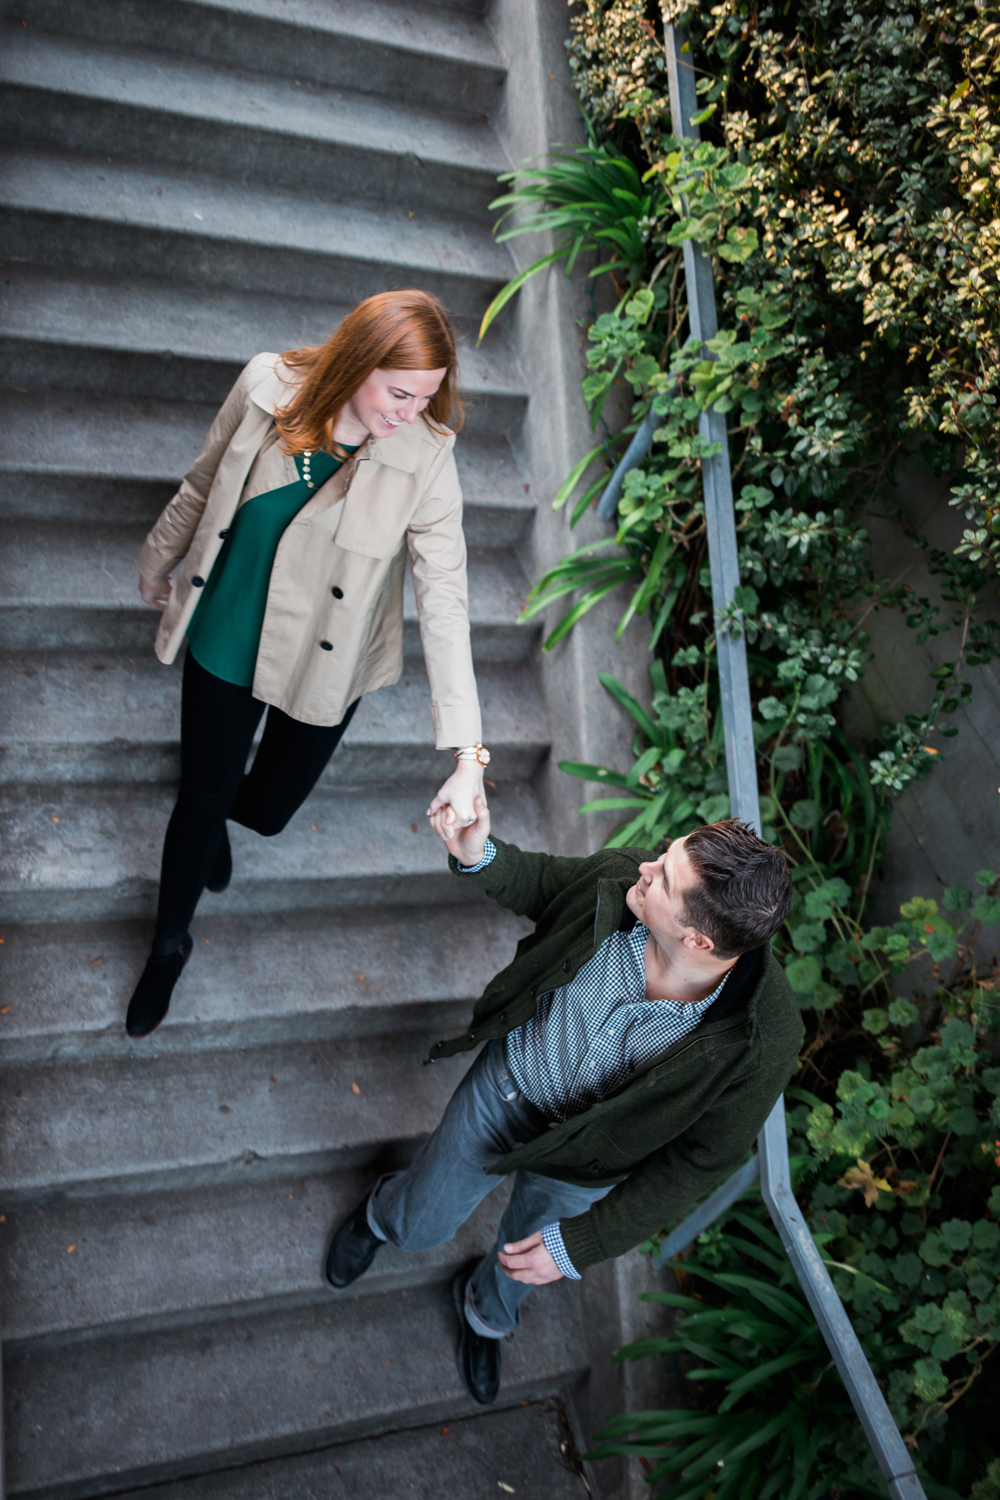 corona-heights-park-san-francisco-engagement-photography-lilouette-02.jpg